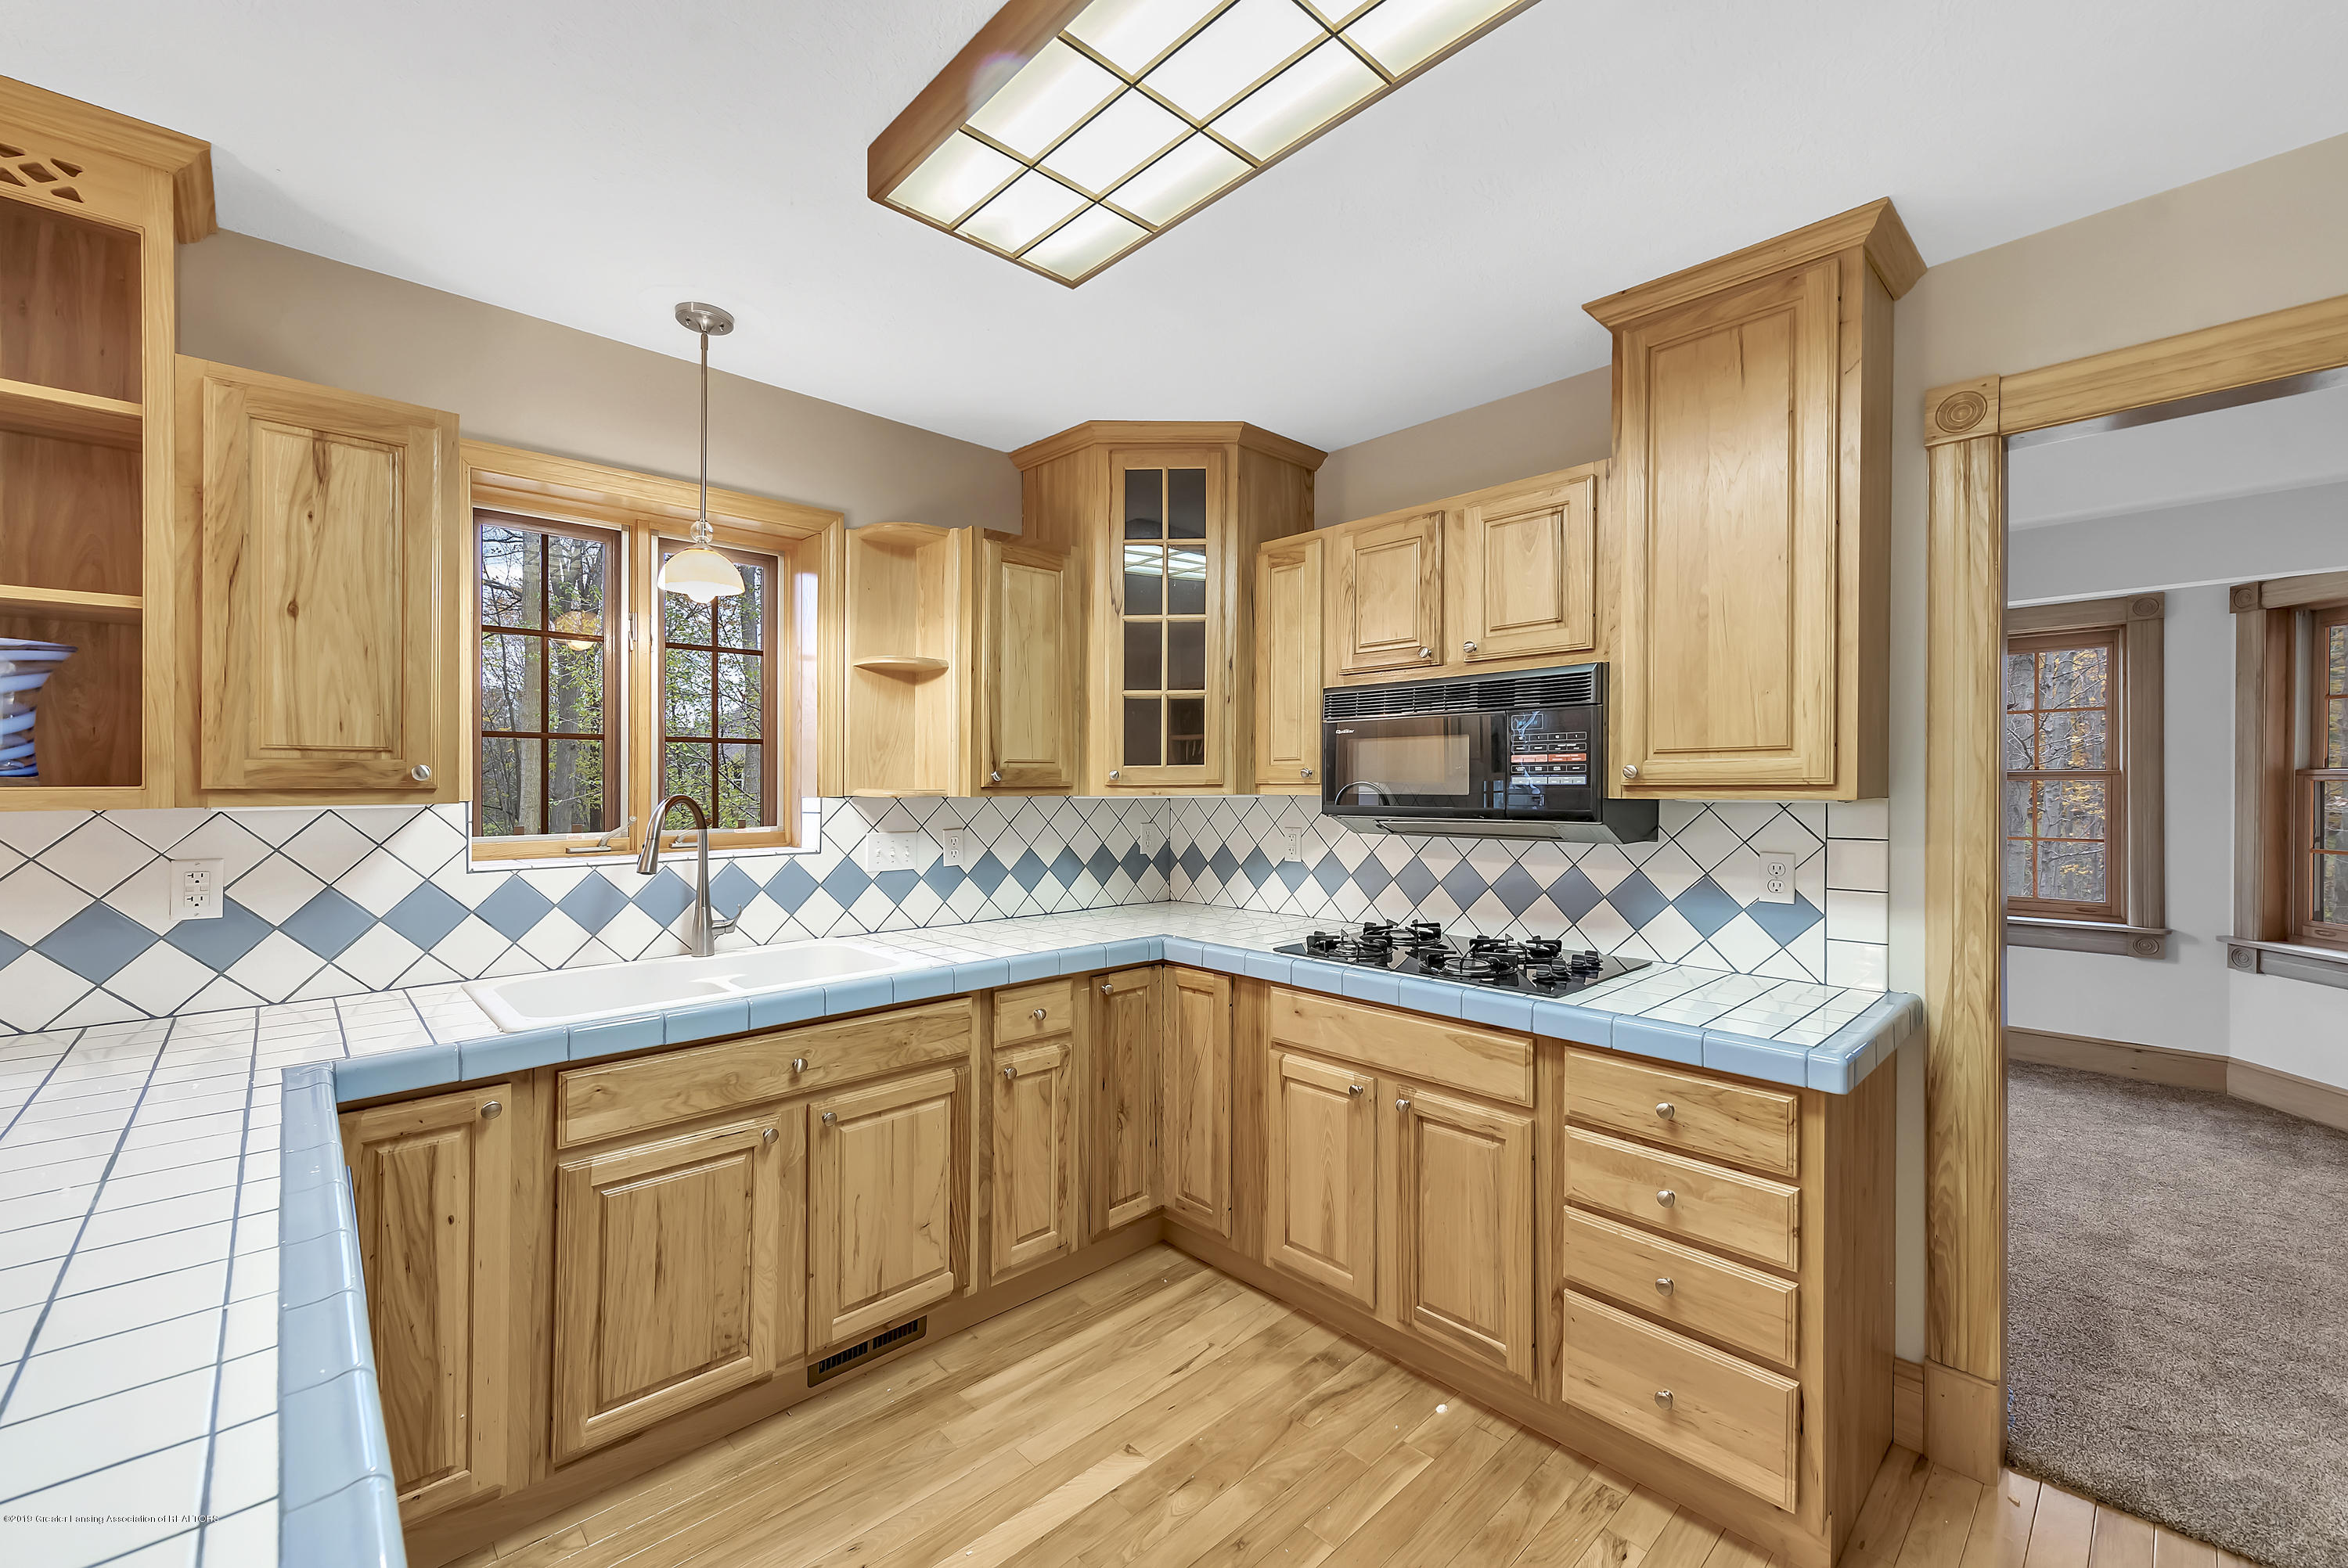 10865 Barnes Rd - 10865-Barnes-Rd-WindowStill-Real-Estate- - 11